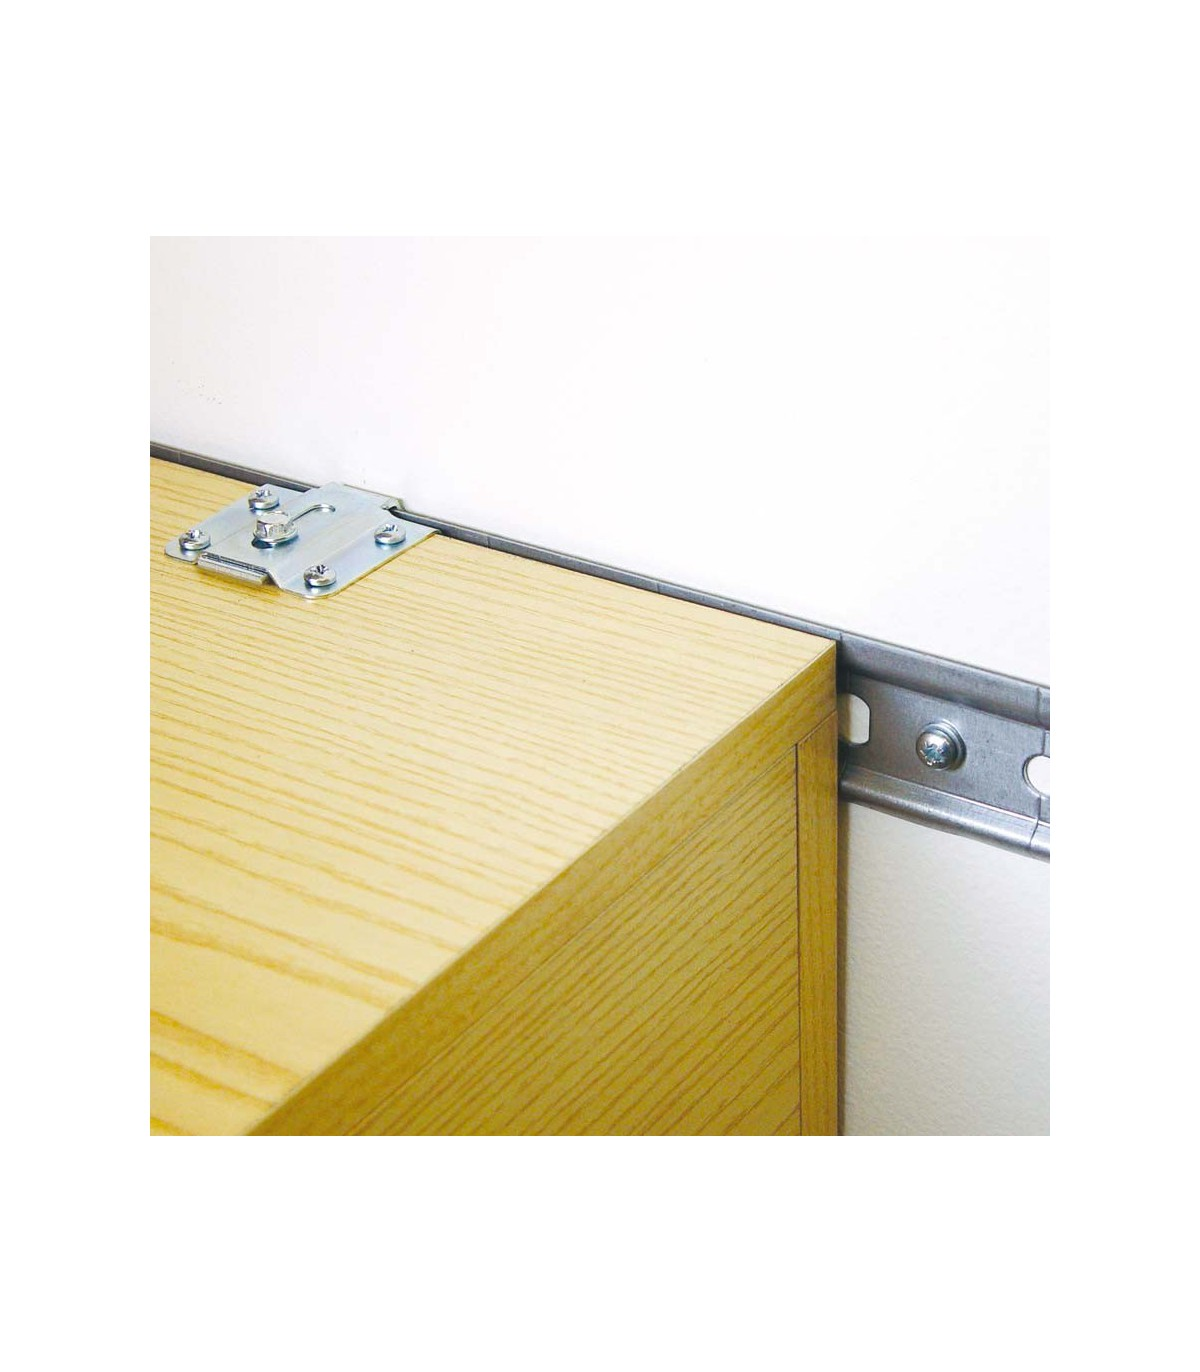 Rail De Fixation Longueur 1 Metre Pour Placards Hauts Amenagement